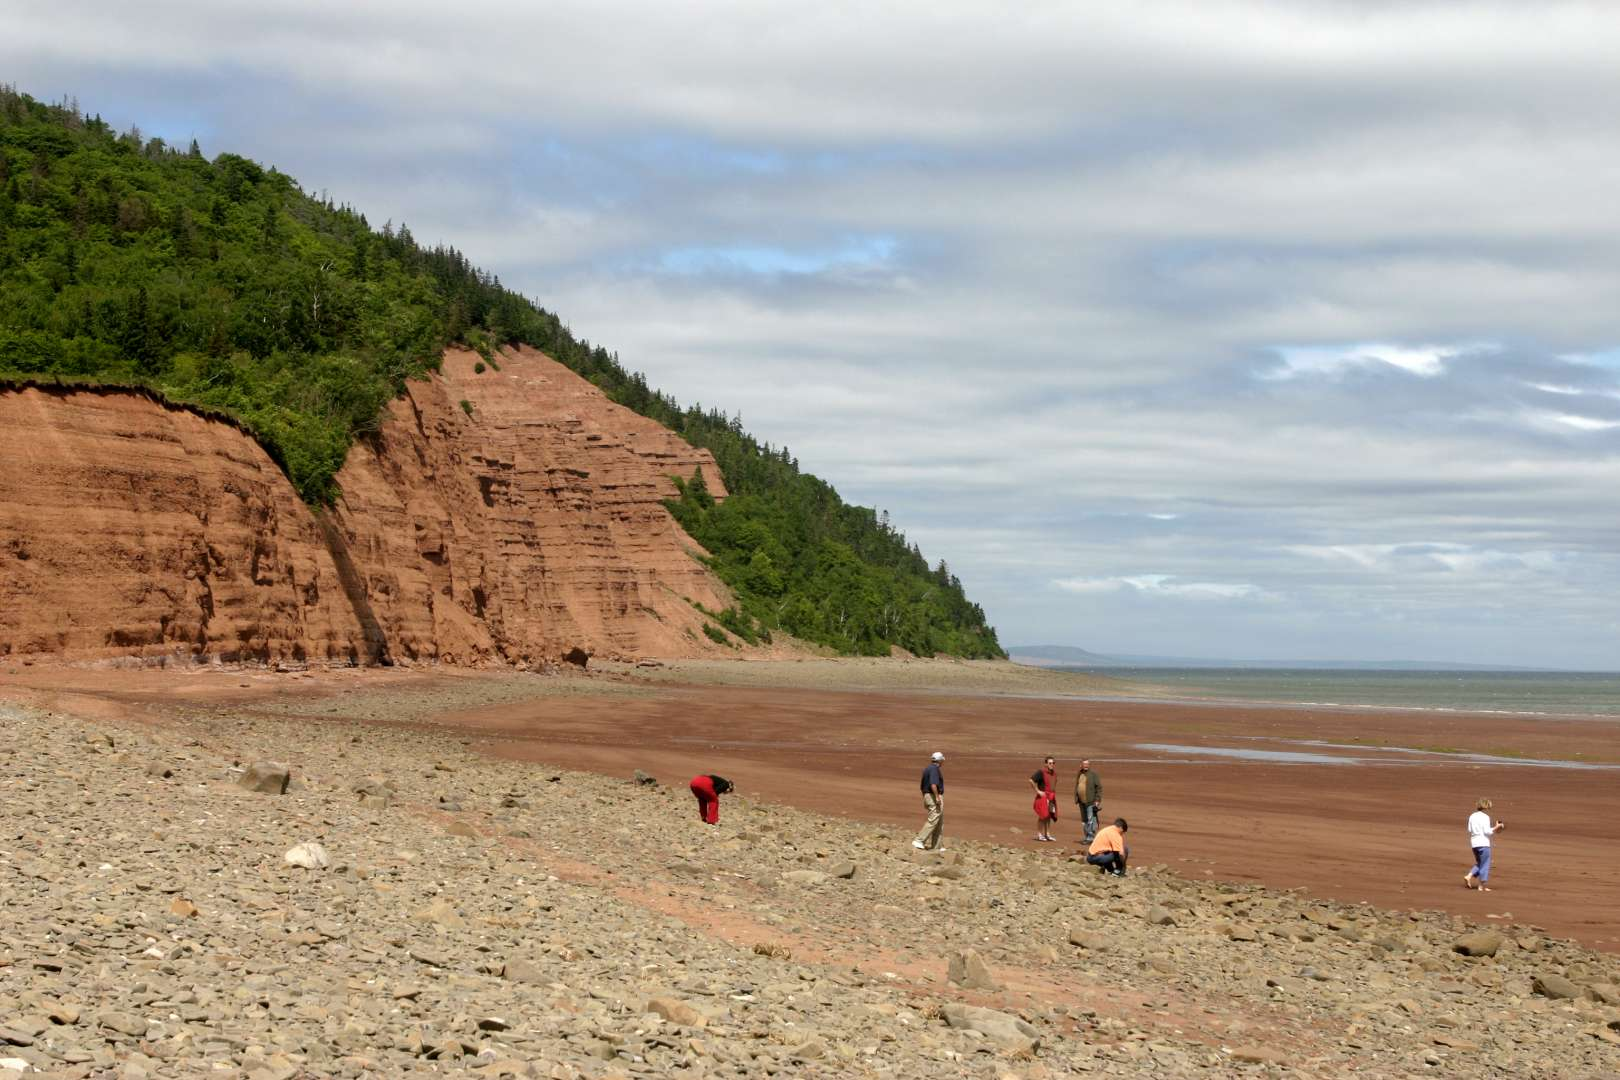 The red hills surrounding Blomidon Beach near Canning Nova Scotia is a favorite spot for people to walk on the beach. The high tides of the Bay of Fundy leave a large sand beach for walking at low Tide. **For Editorial and Personal Use Only